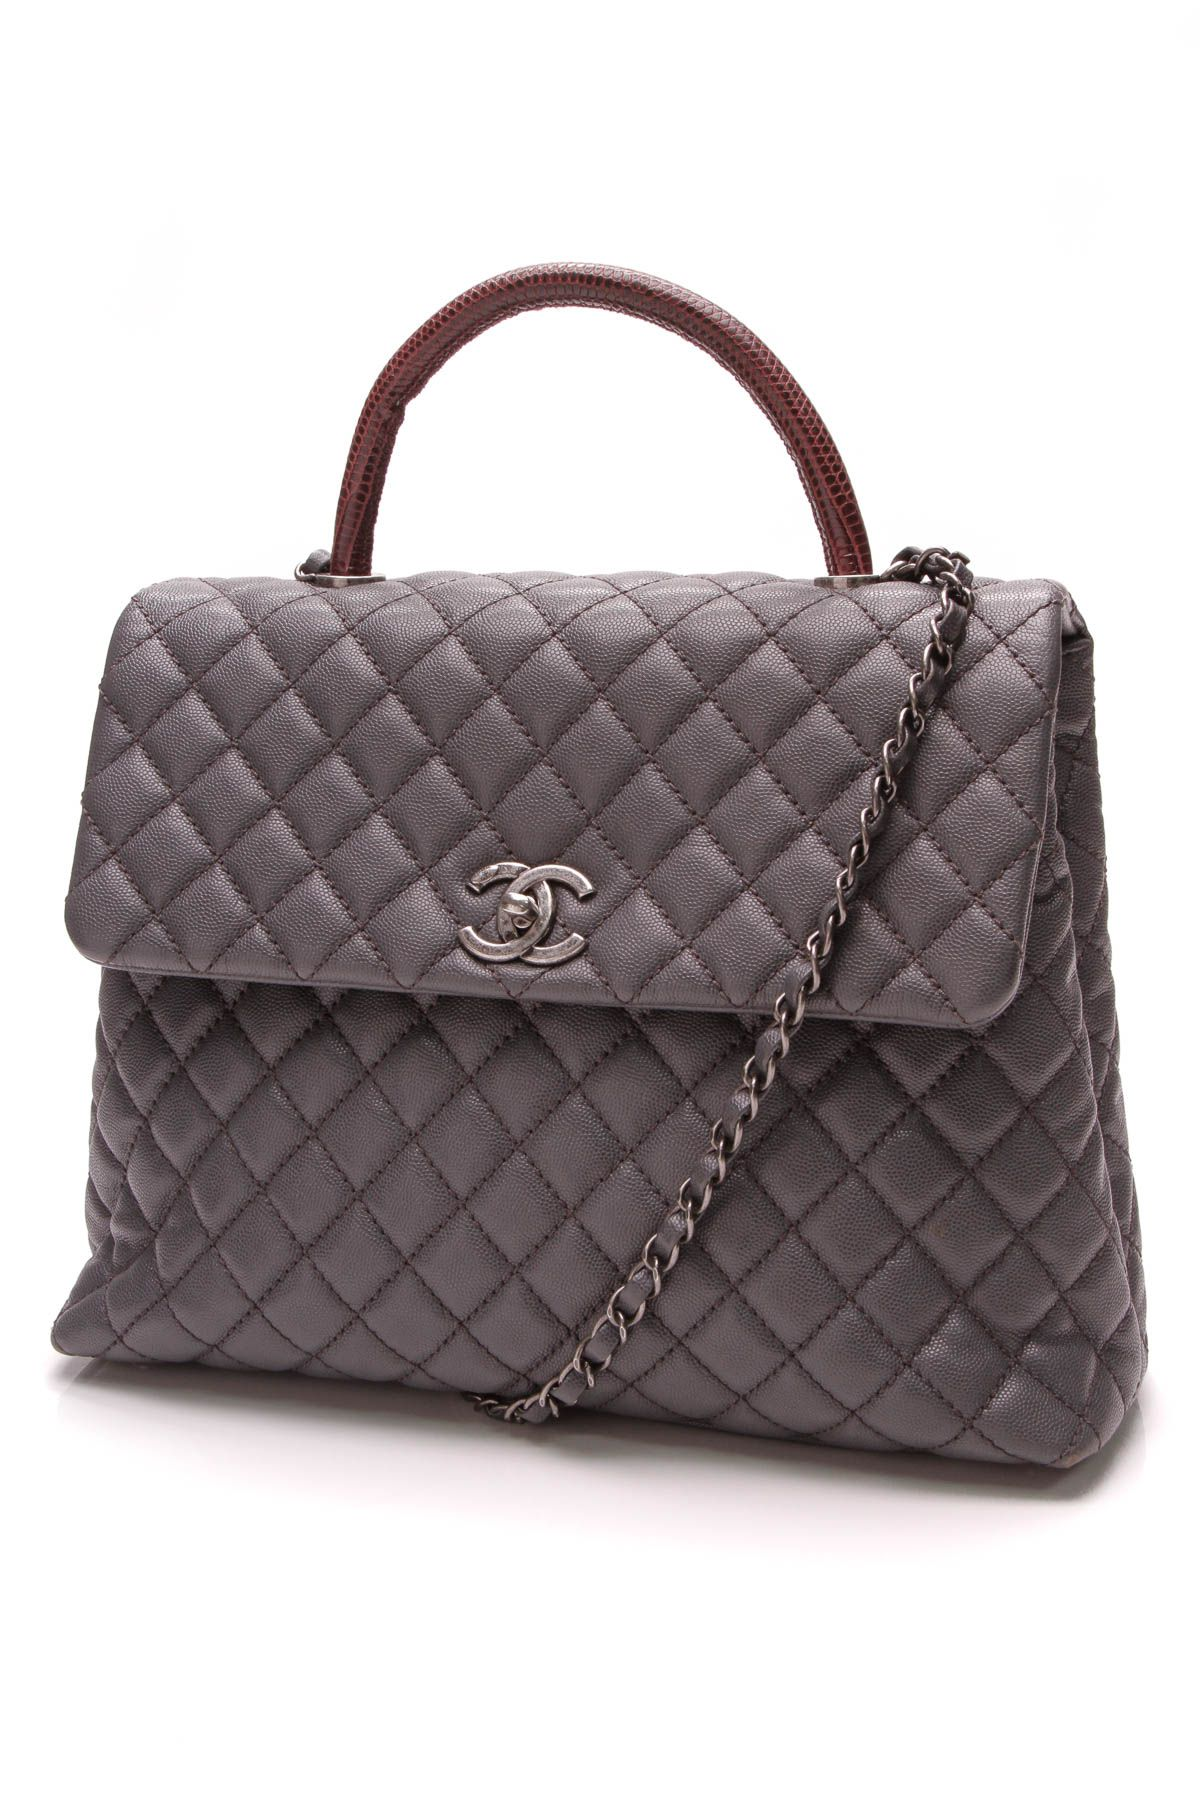 ad366d1a510497 Chanel Coco Handle Large Bag - Gray Caviar | Crazy for Coco | Chanel ...